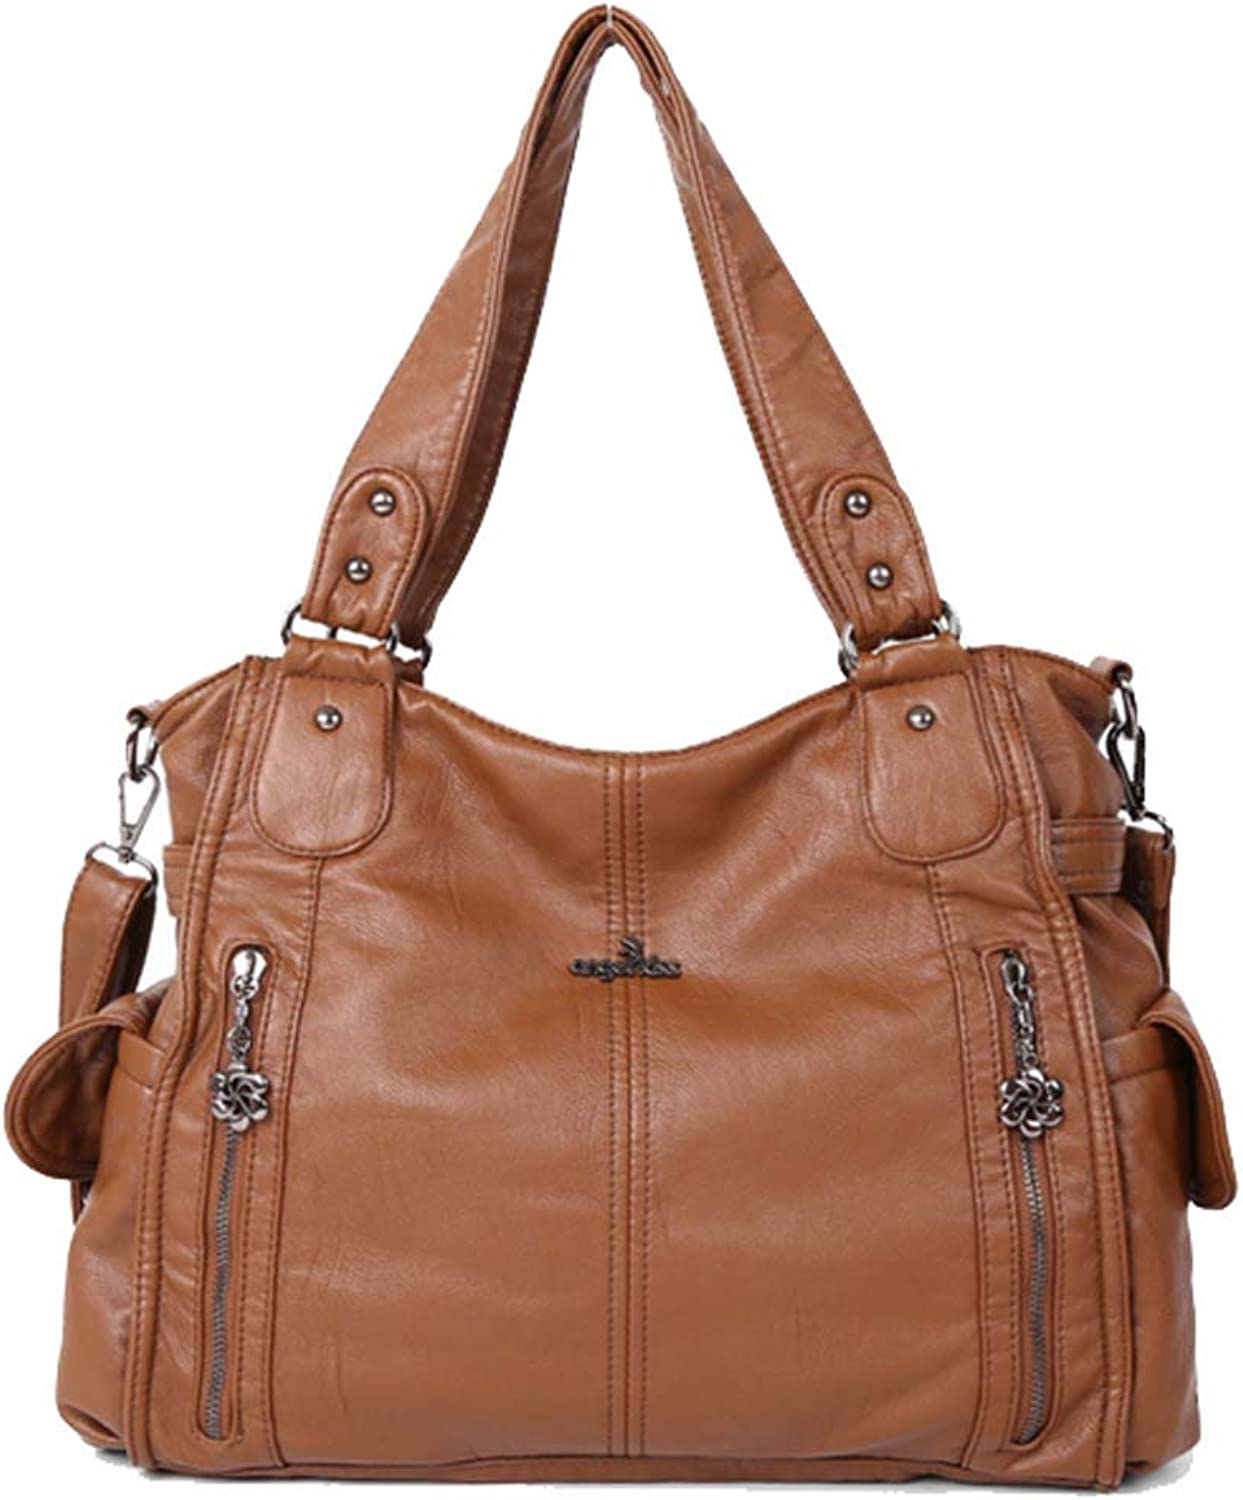 YaJaMa Women Front Zippers Washed Leather Handbag Shoulder Crossbody Daily Bag Totes (Brown)